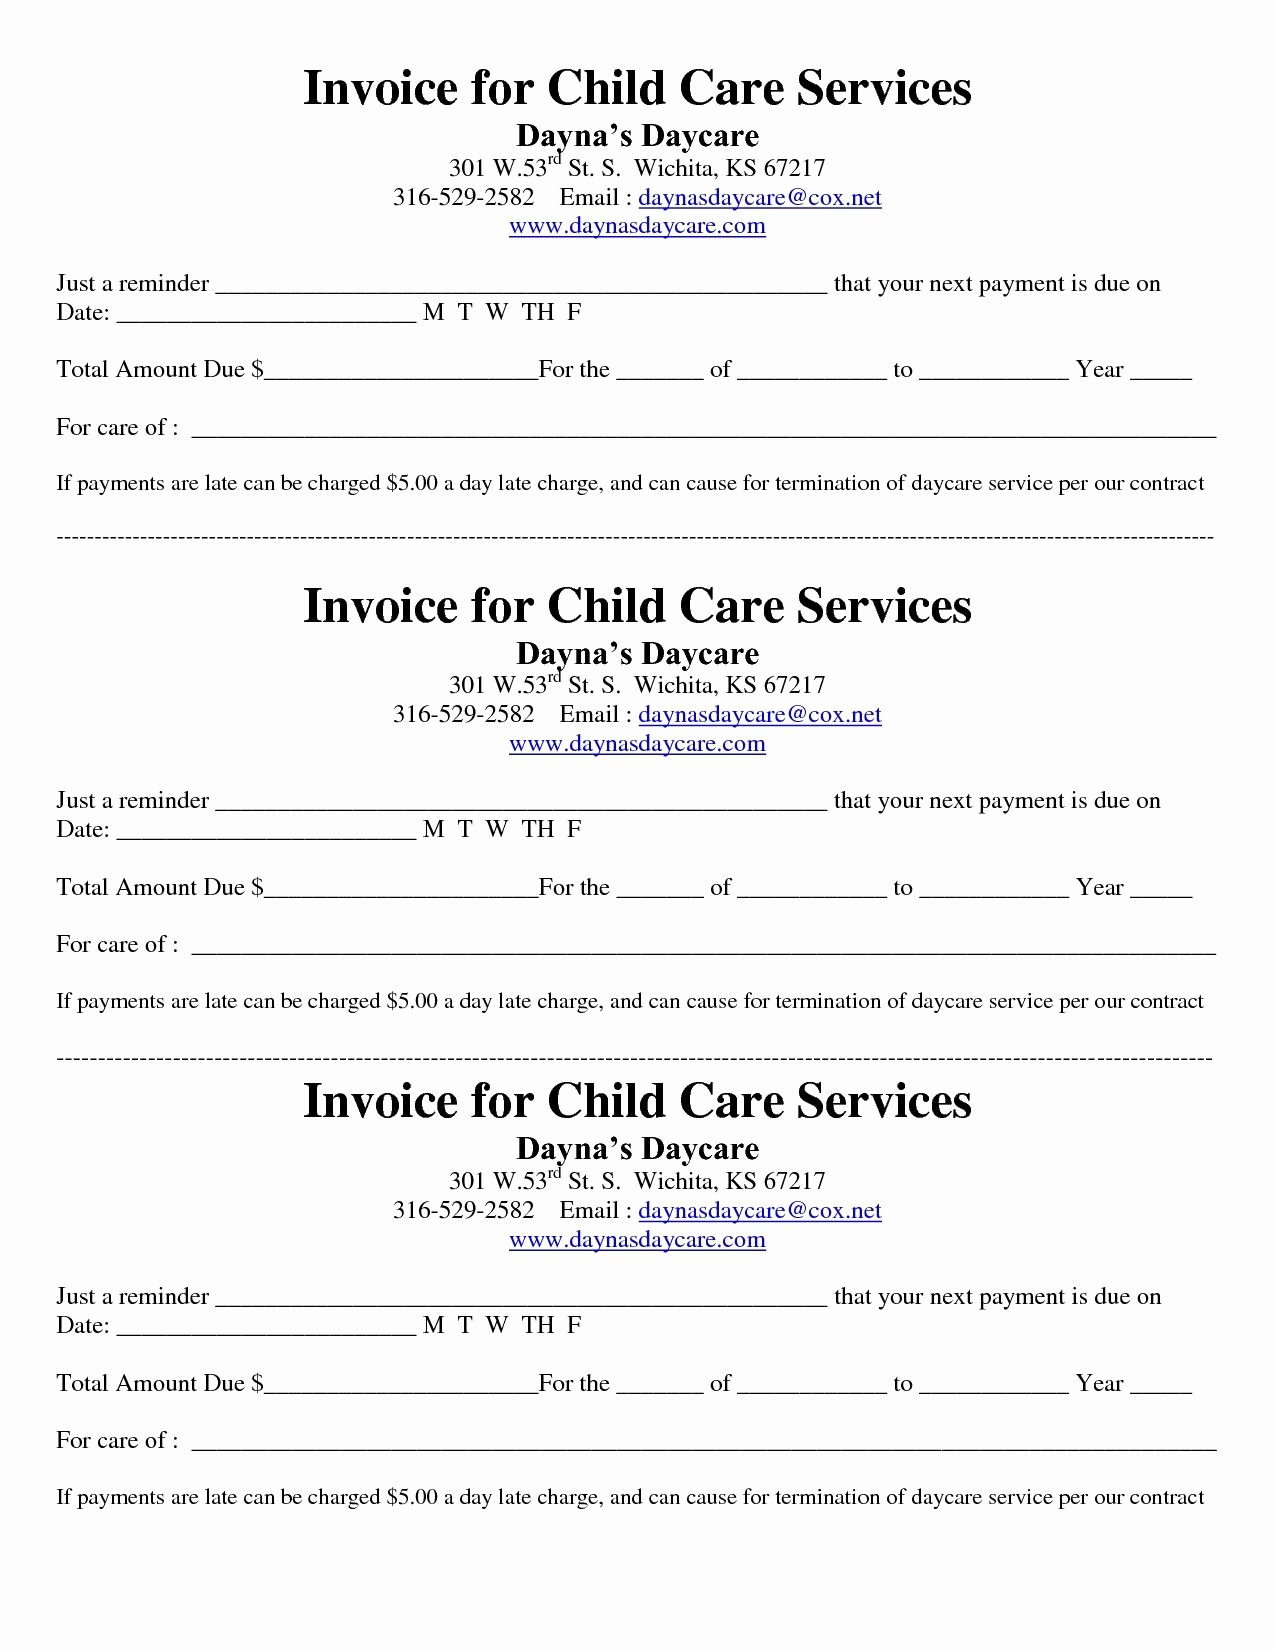 Child Care Invoice Template Lovely Child Care Receipt Invoice Jordi Preschool